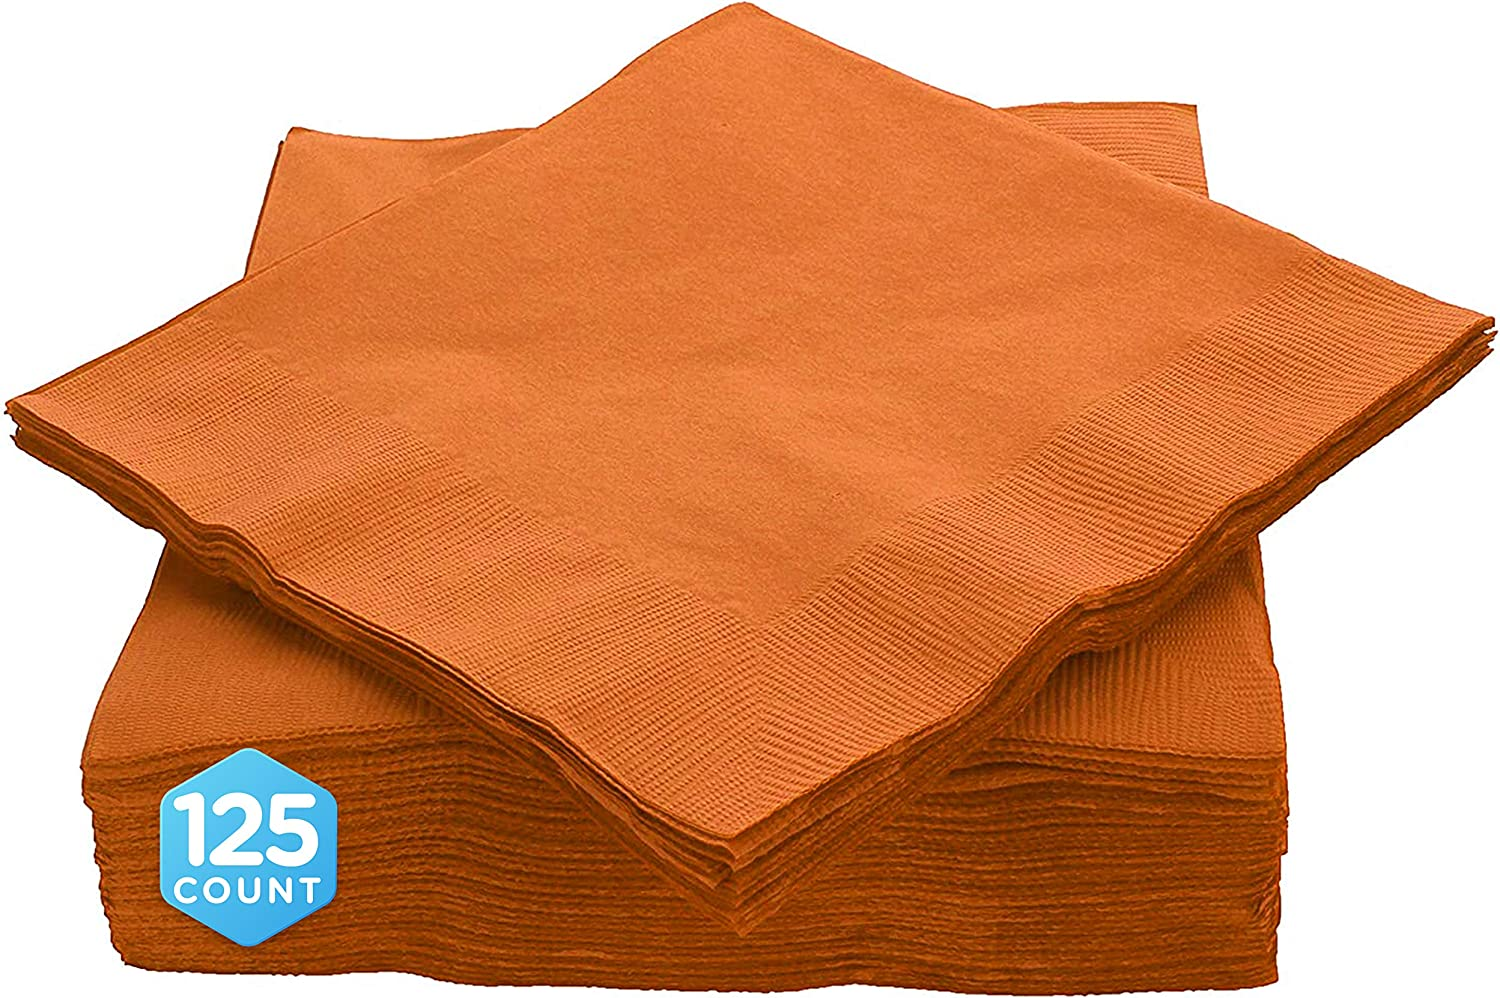 """Amcrate Big Party Pack 125 Count Orange Beverage Napkins - Ideal for Wedding, Party, Birthday, Dinner, Lunch, Cocktails. (5"""" x 5"""")"""